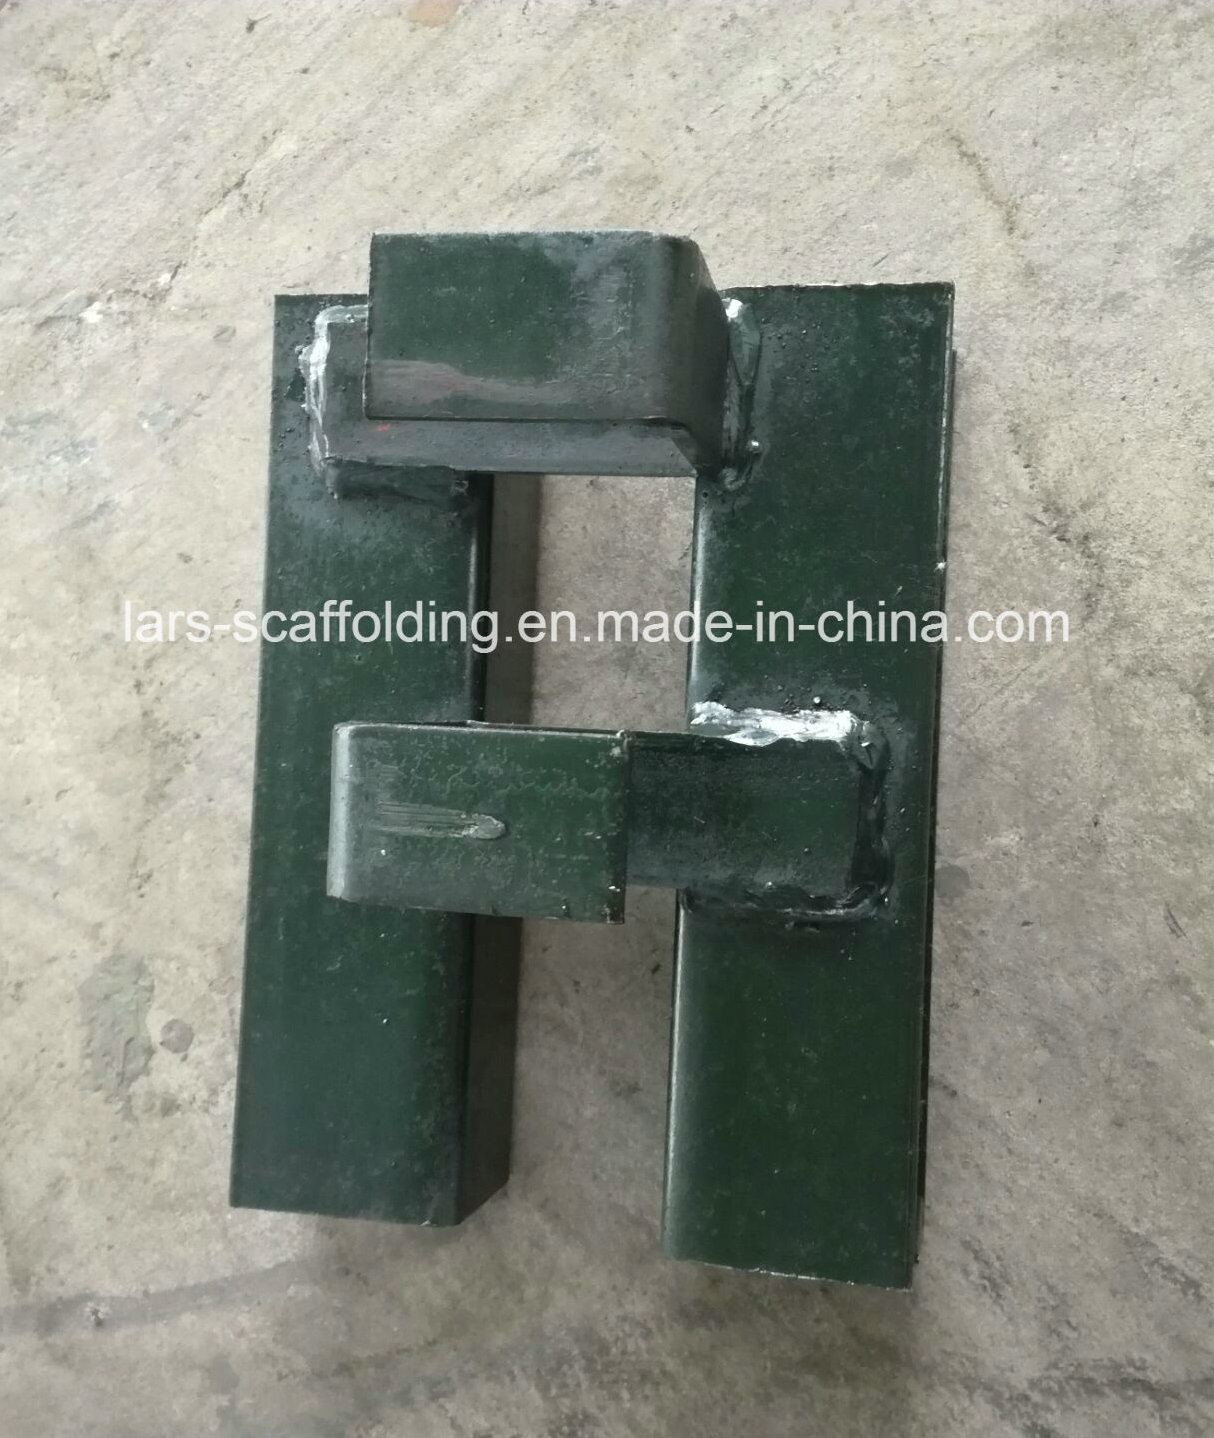 China Kwikstage System Scaffolding Accessories Toe Board Clip ...